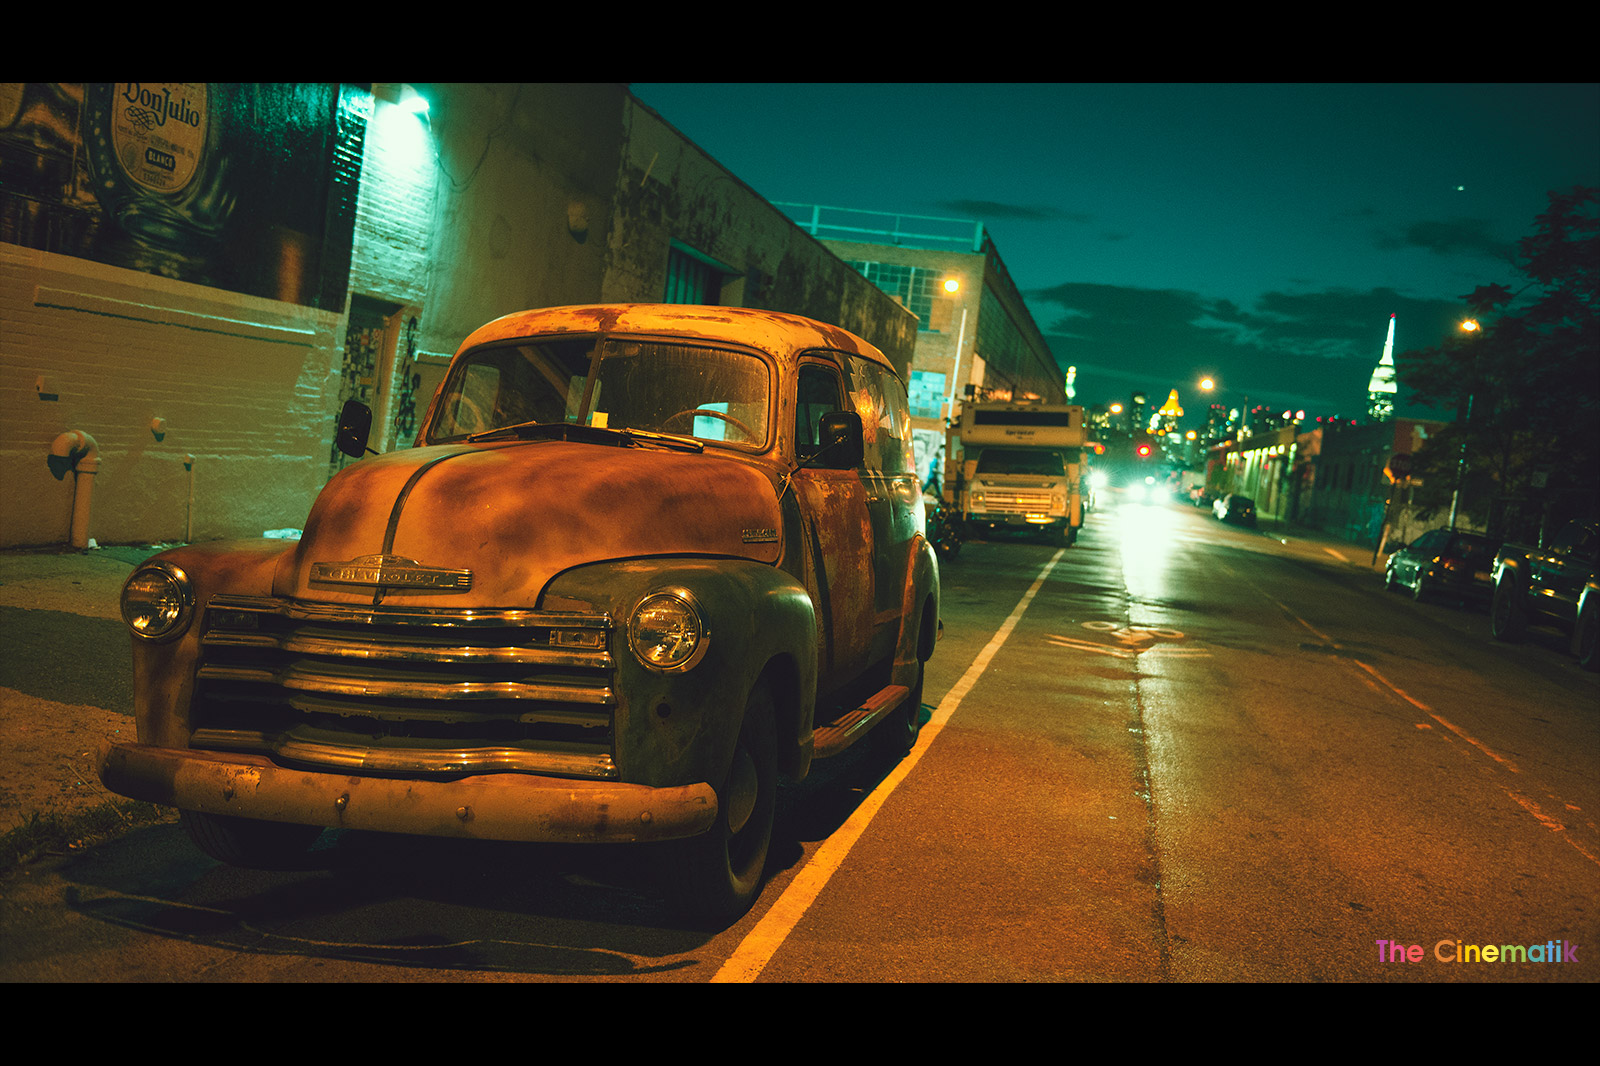 Beautiful-OLD-CAR-under-night-lights-in-Brooklyn-cinematic-photograph-by-Kamal-Lahmadi.jpg